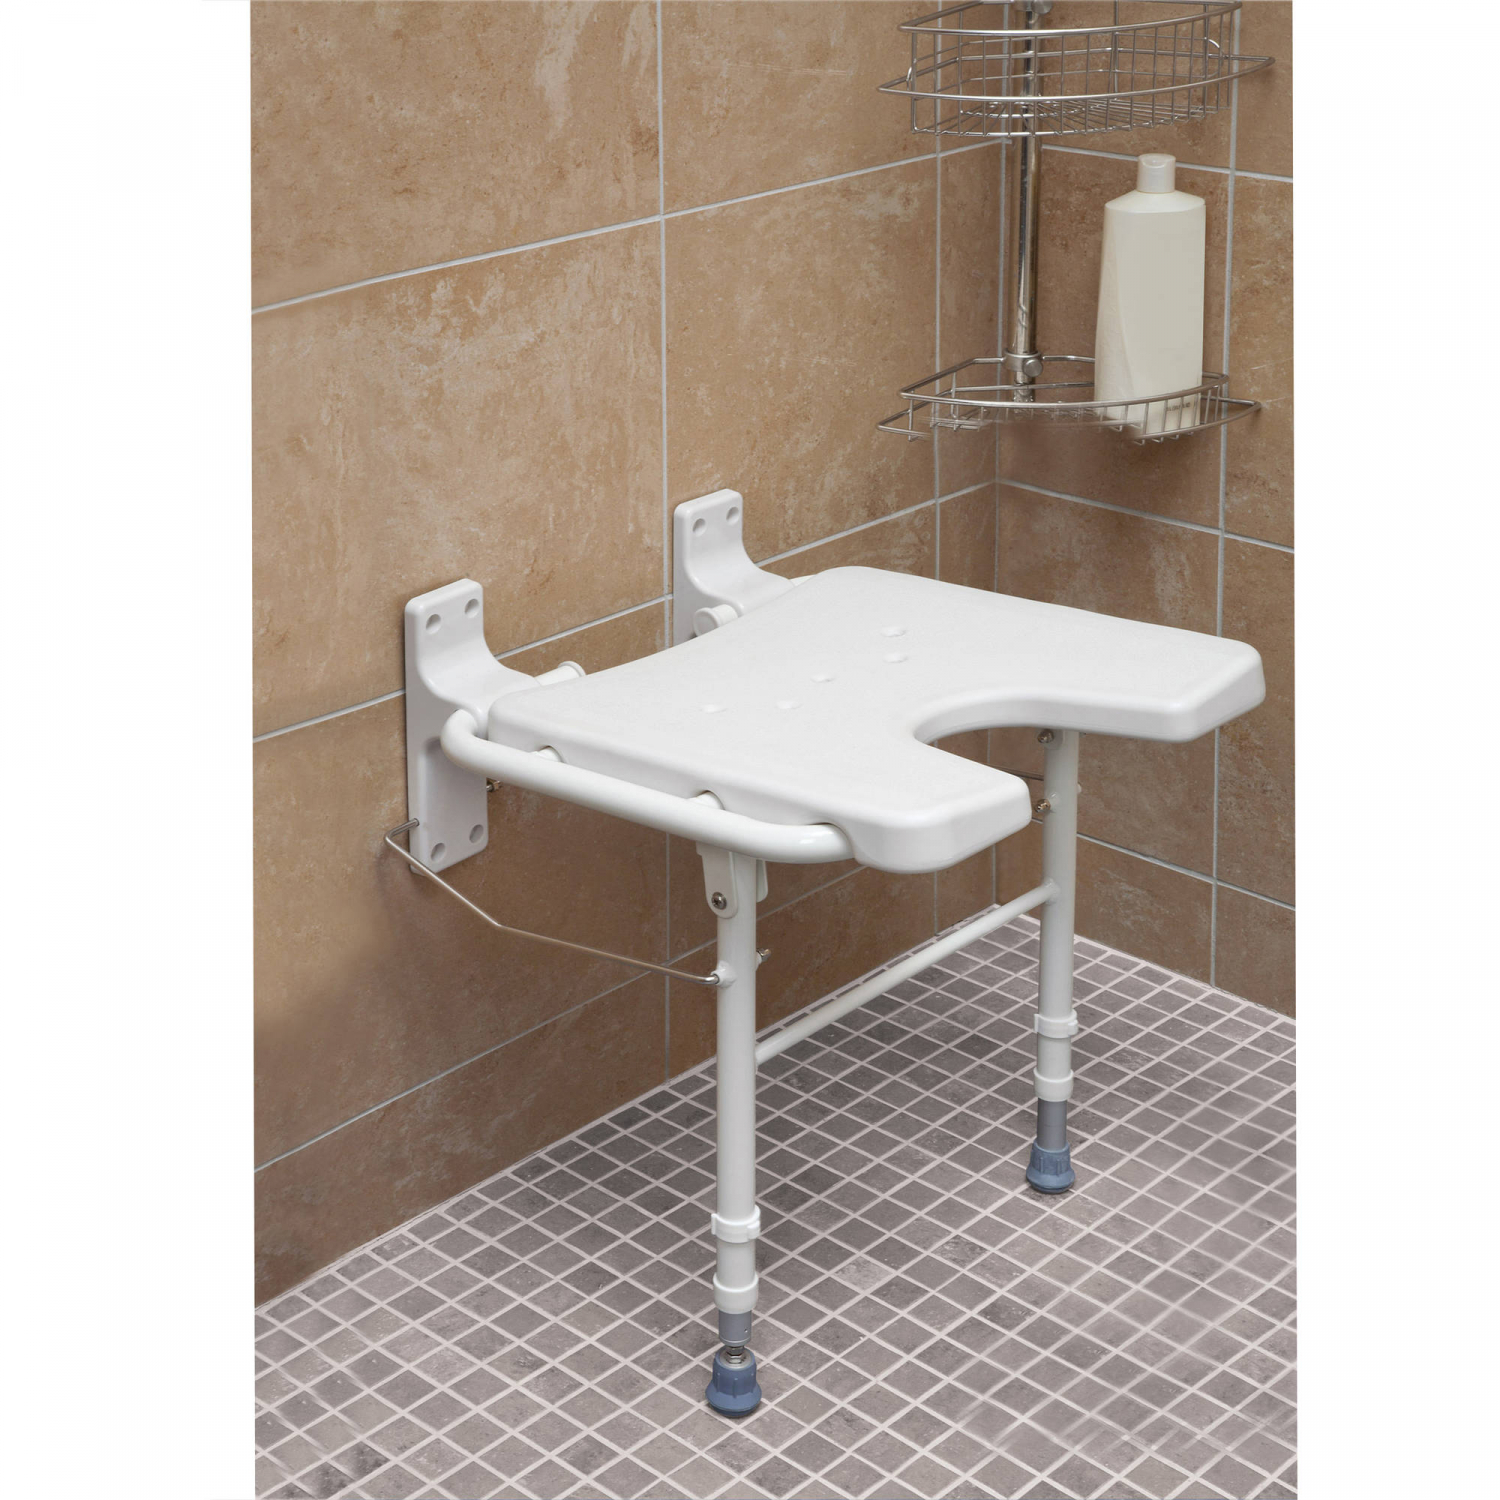 Details About Handicap Shower Seat Folding Safety Bench For Elderly Wall Mount Tub Chair Folds